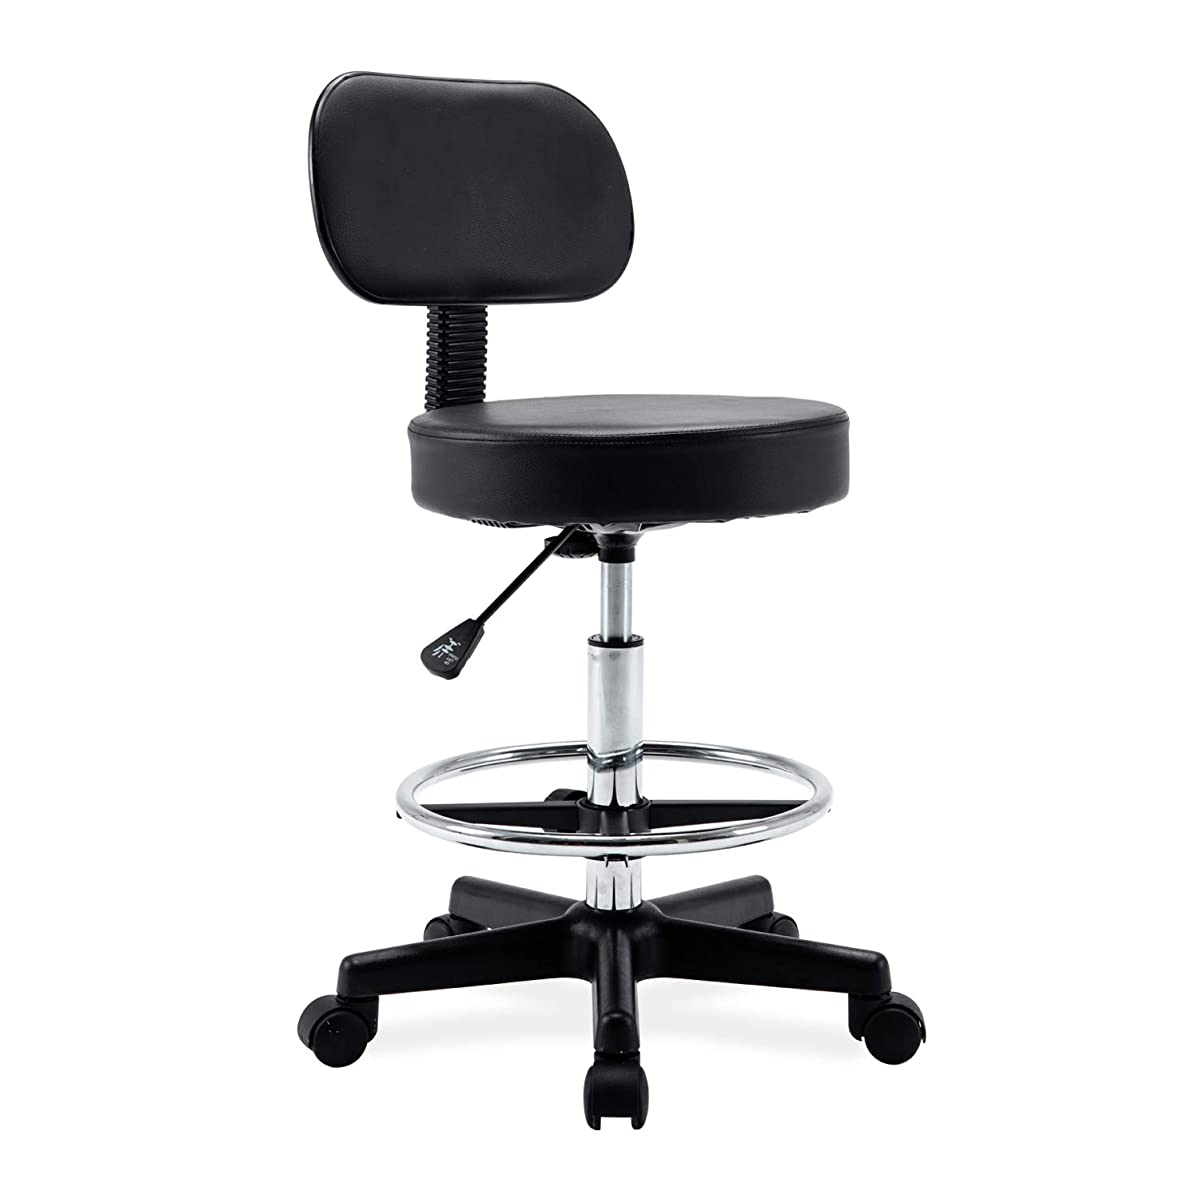 Ergonomic Drafting Stool- Adjustable Rolling Office Chair Work Stool with Back and Wheels for Home Office Workplace Studio Guitar Practice, seat Height 19.7-27.5'' …